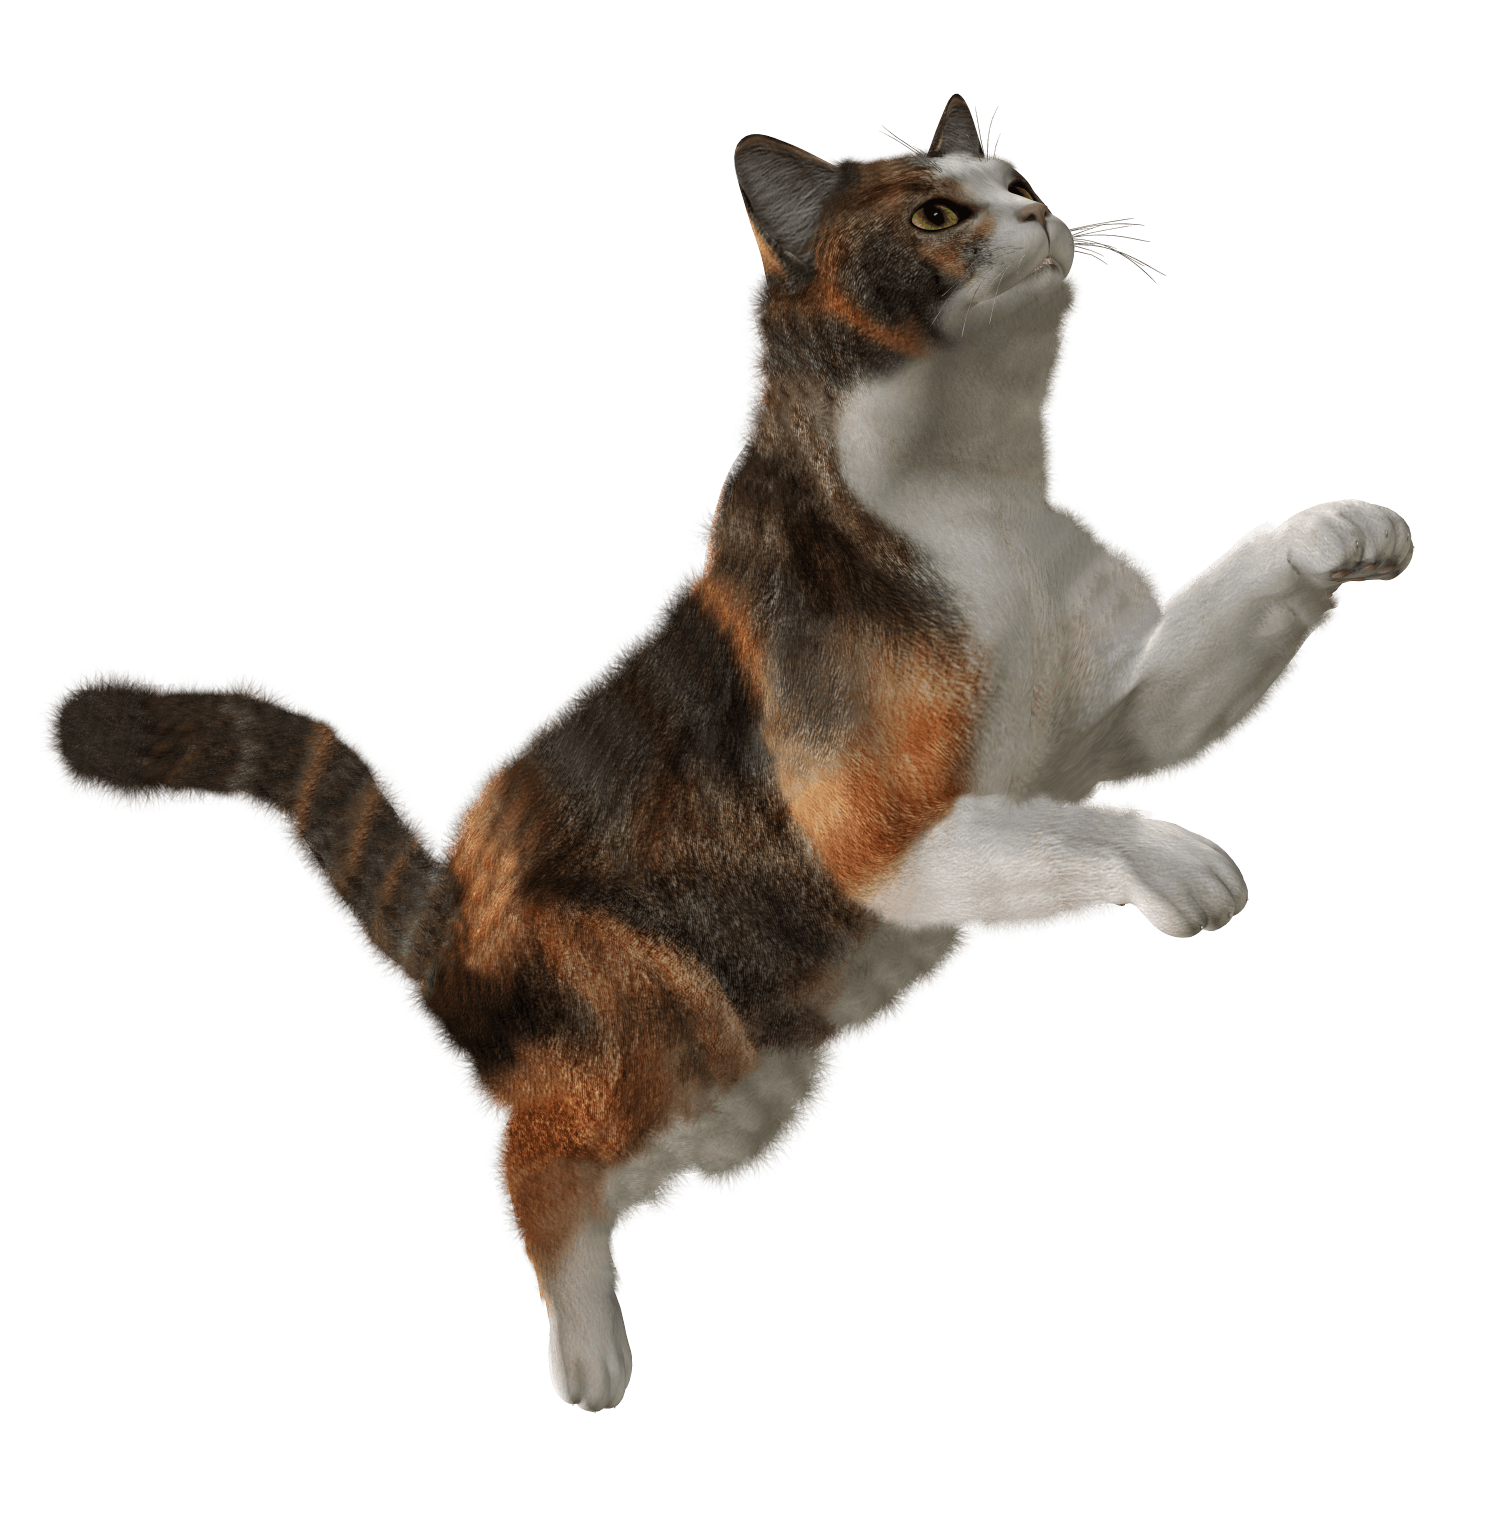 Cat Png - Cat Png Image Download Picture Kitten PNG Image